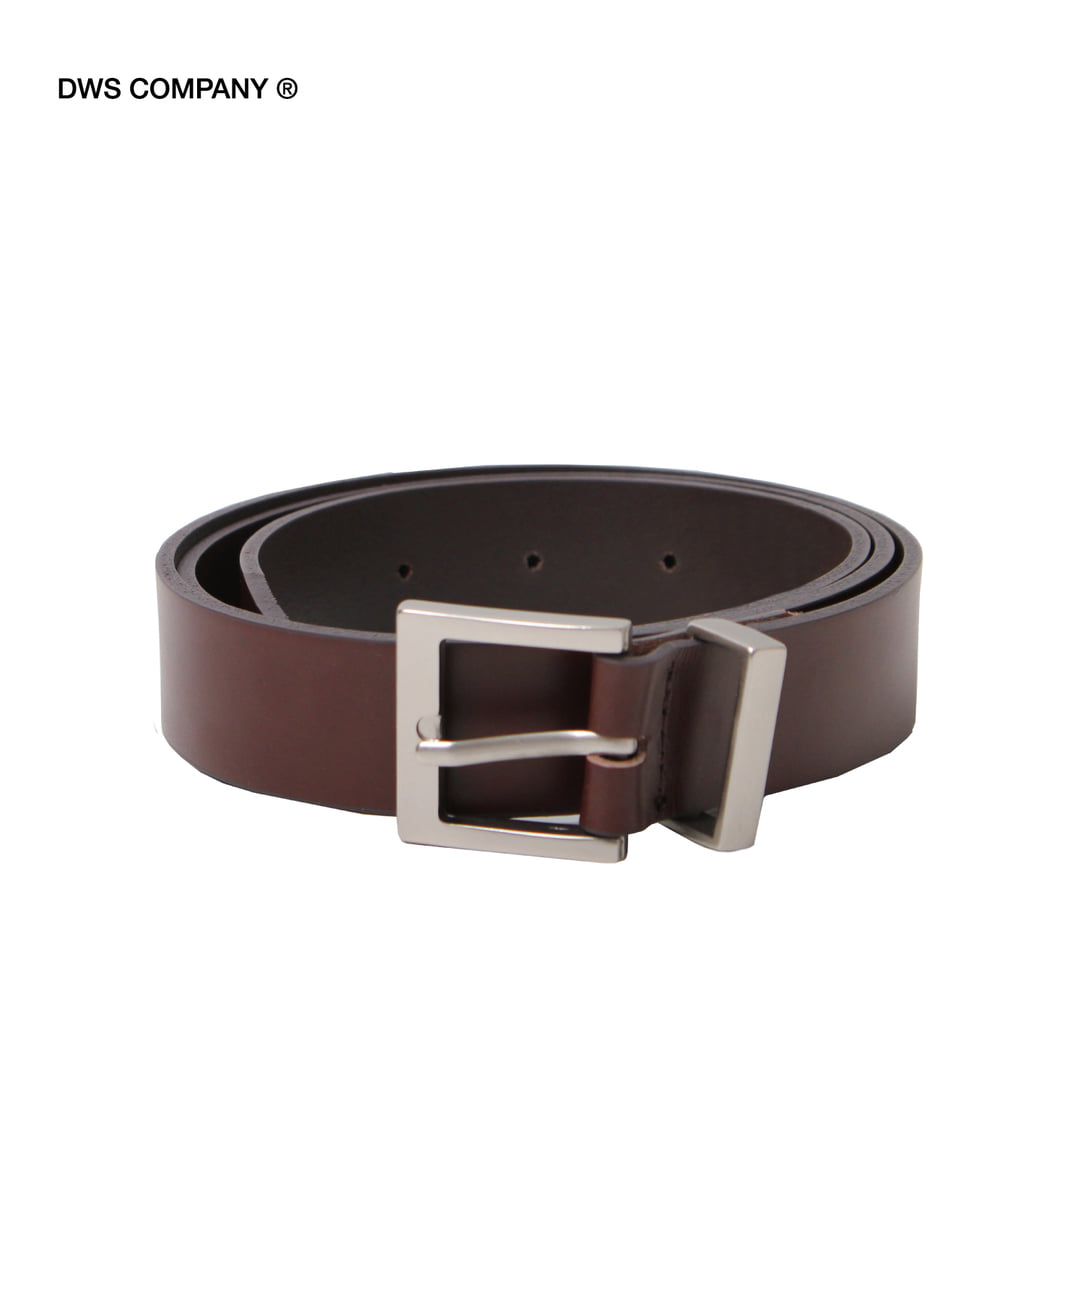 DWS SQUARE LEATHER BELT(DARK BROWN)